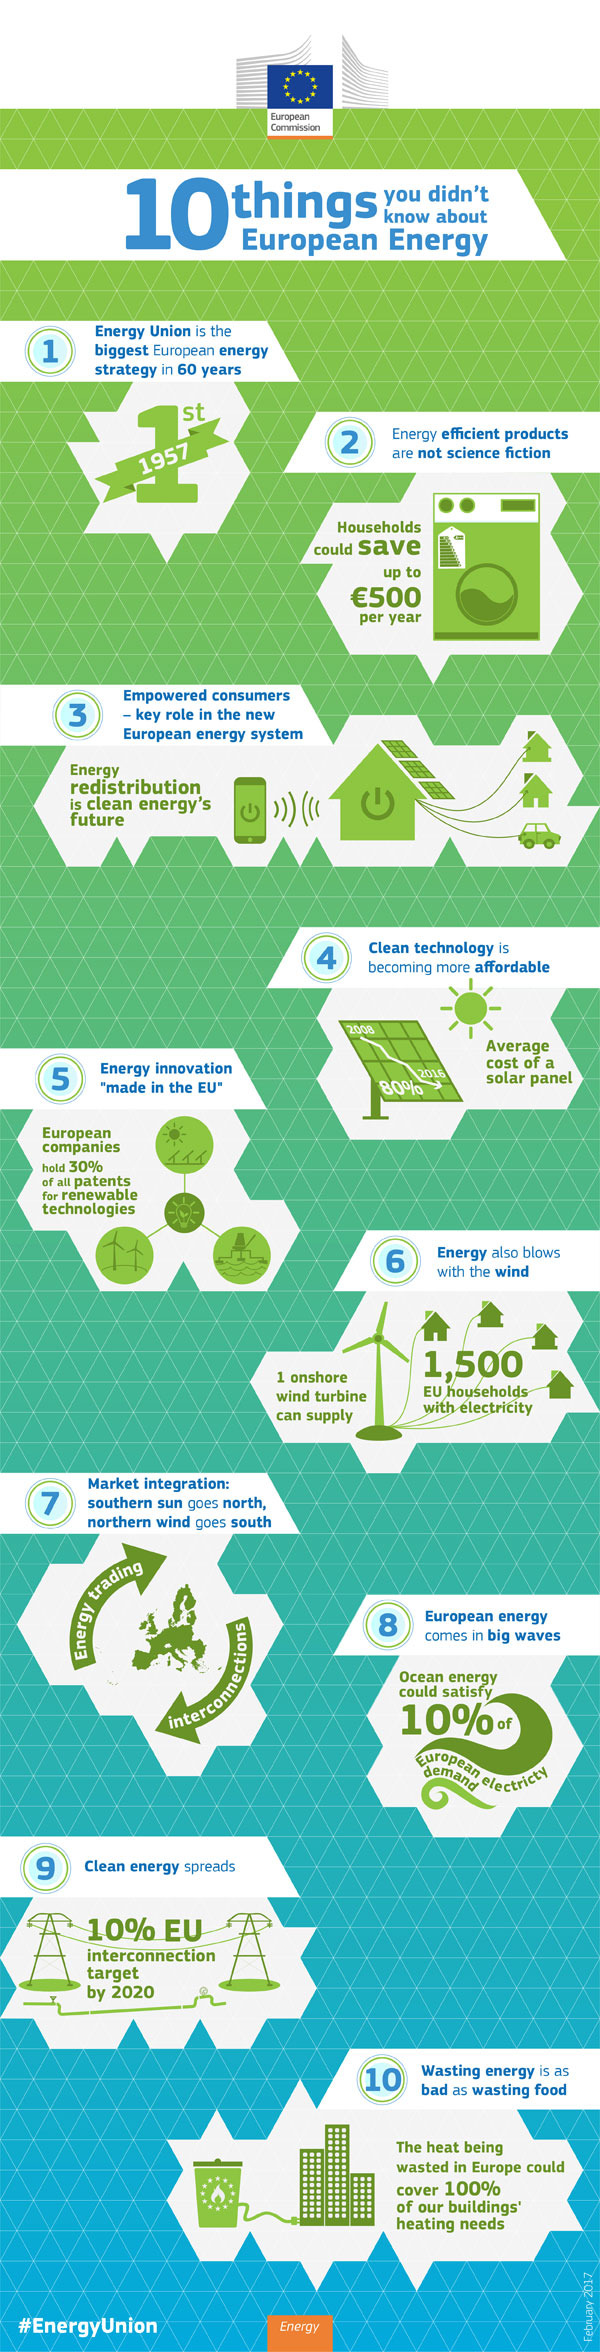 en_dg_energy_infographics_020217_0